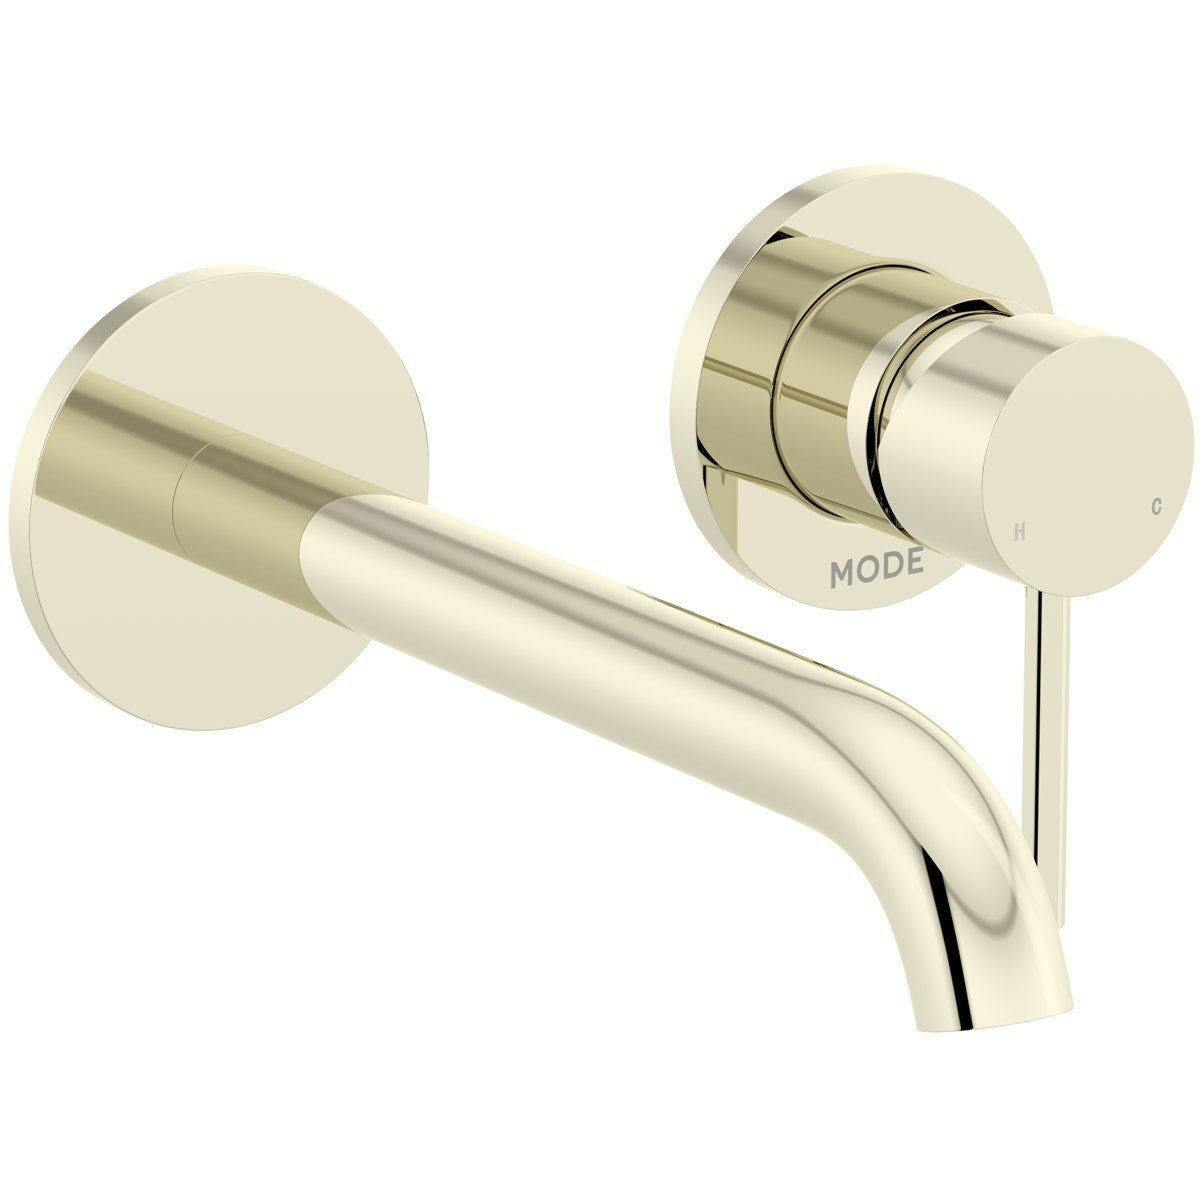 Mode Spencer round wall mounted gold bath mixer tap offer pack